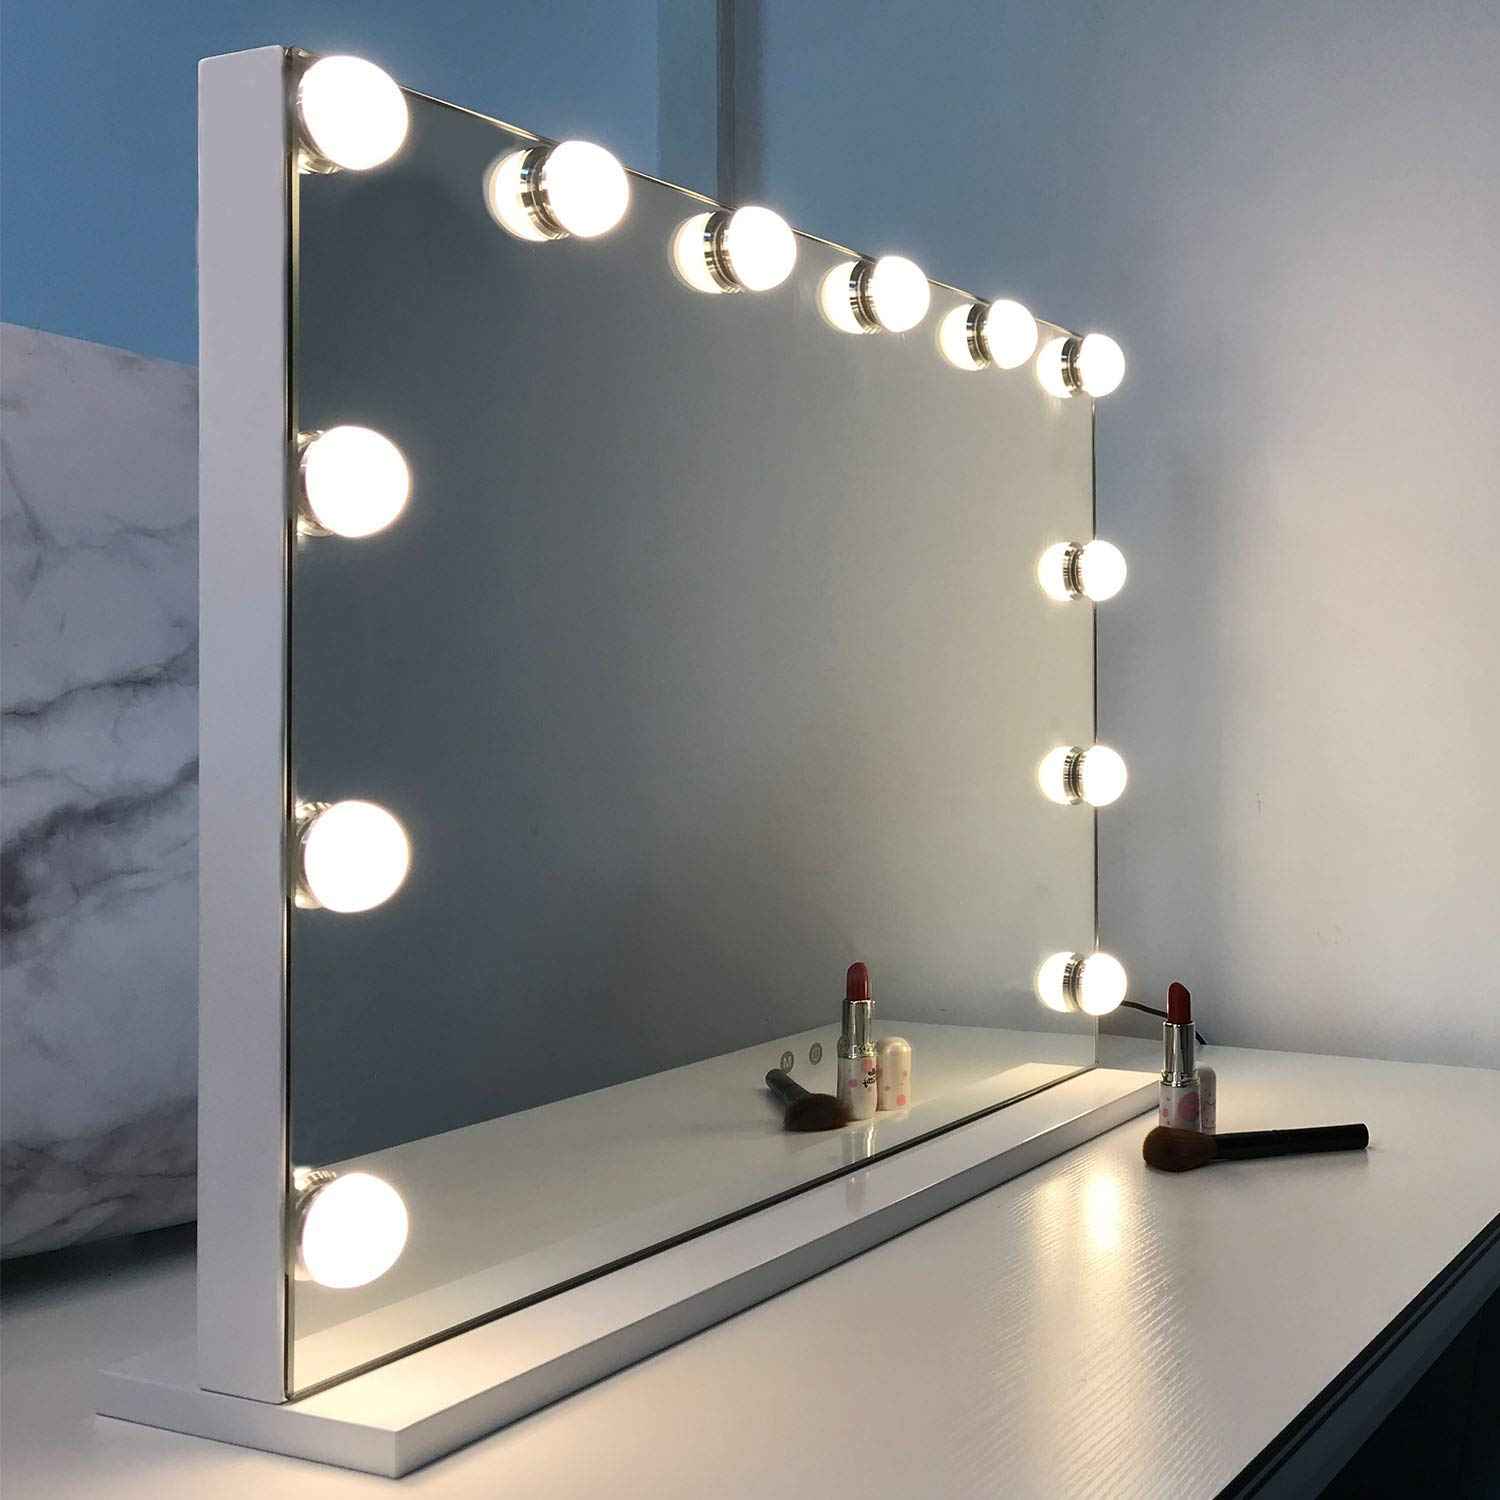 WAYKING Makeup Mirror with Lights, Hollywood Lighted Vanity Mirror with Touch Screen Dimmer, Tabletop Mirror with USB Charging Port, 3 Color Lighting Modes, White H17.3 X L22.8 Inch